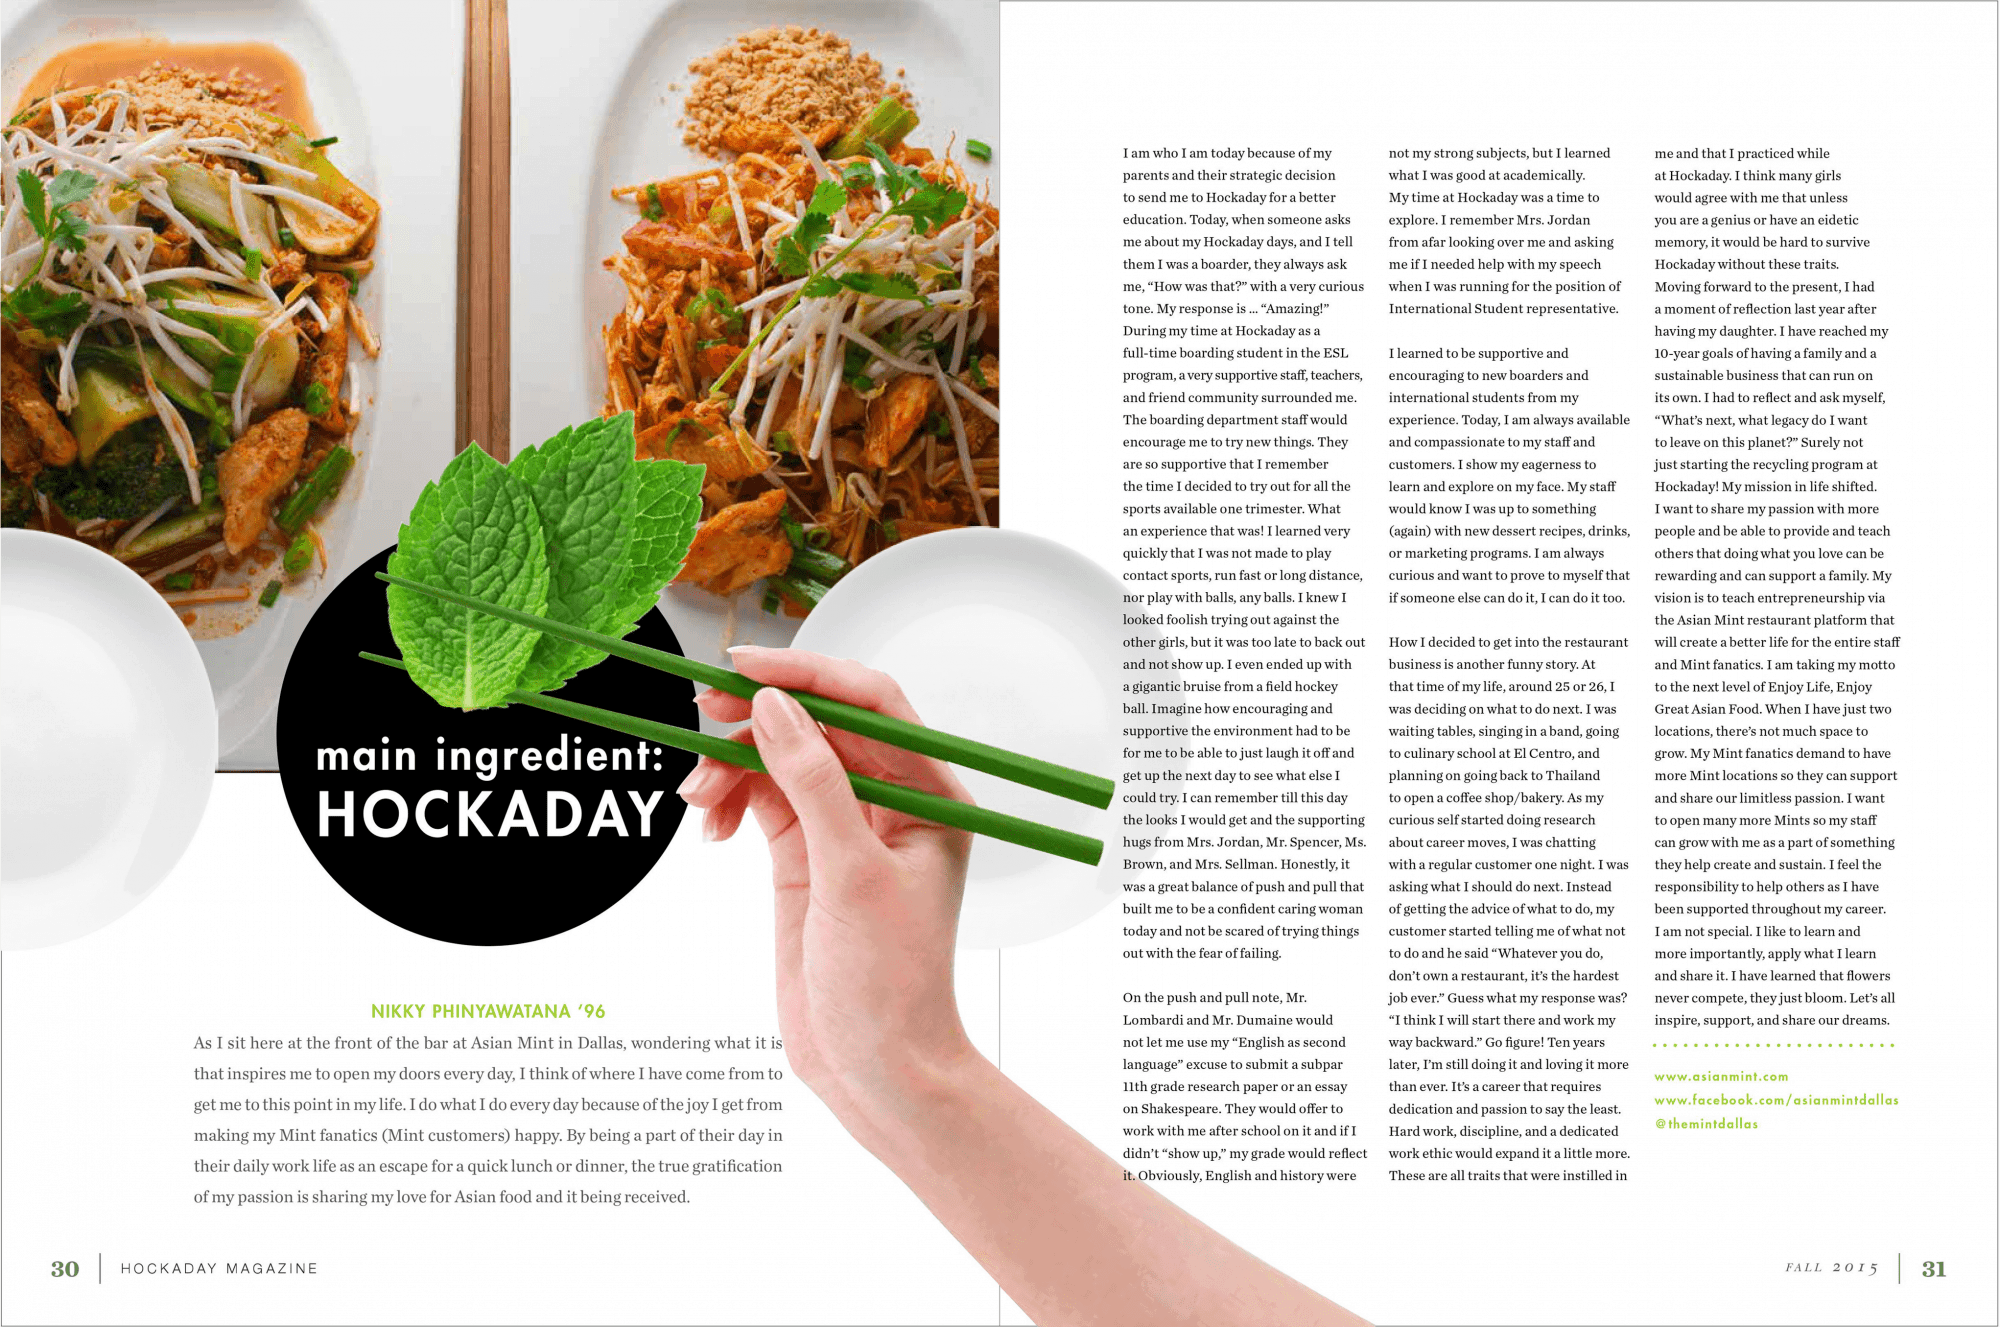 ASIAN MINT article in Hockaday Magazine by Nikky Phinyawatana